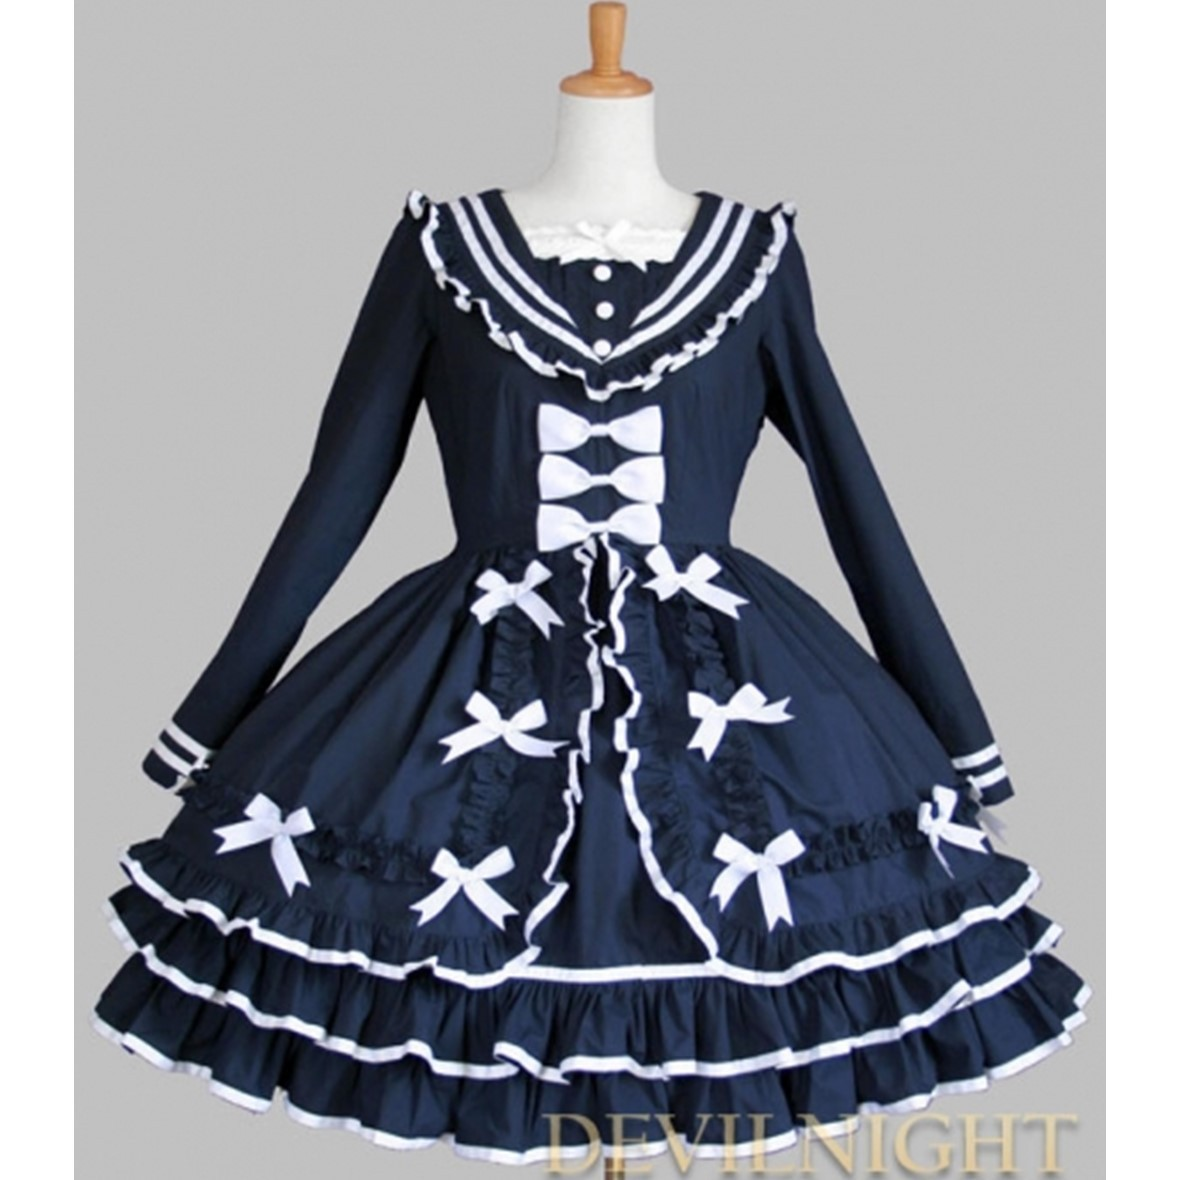 ◆DevilNight◆BLUE COTTON LONG SLEEVES SWEET LOLITA DRESS